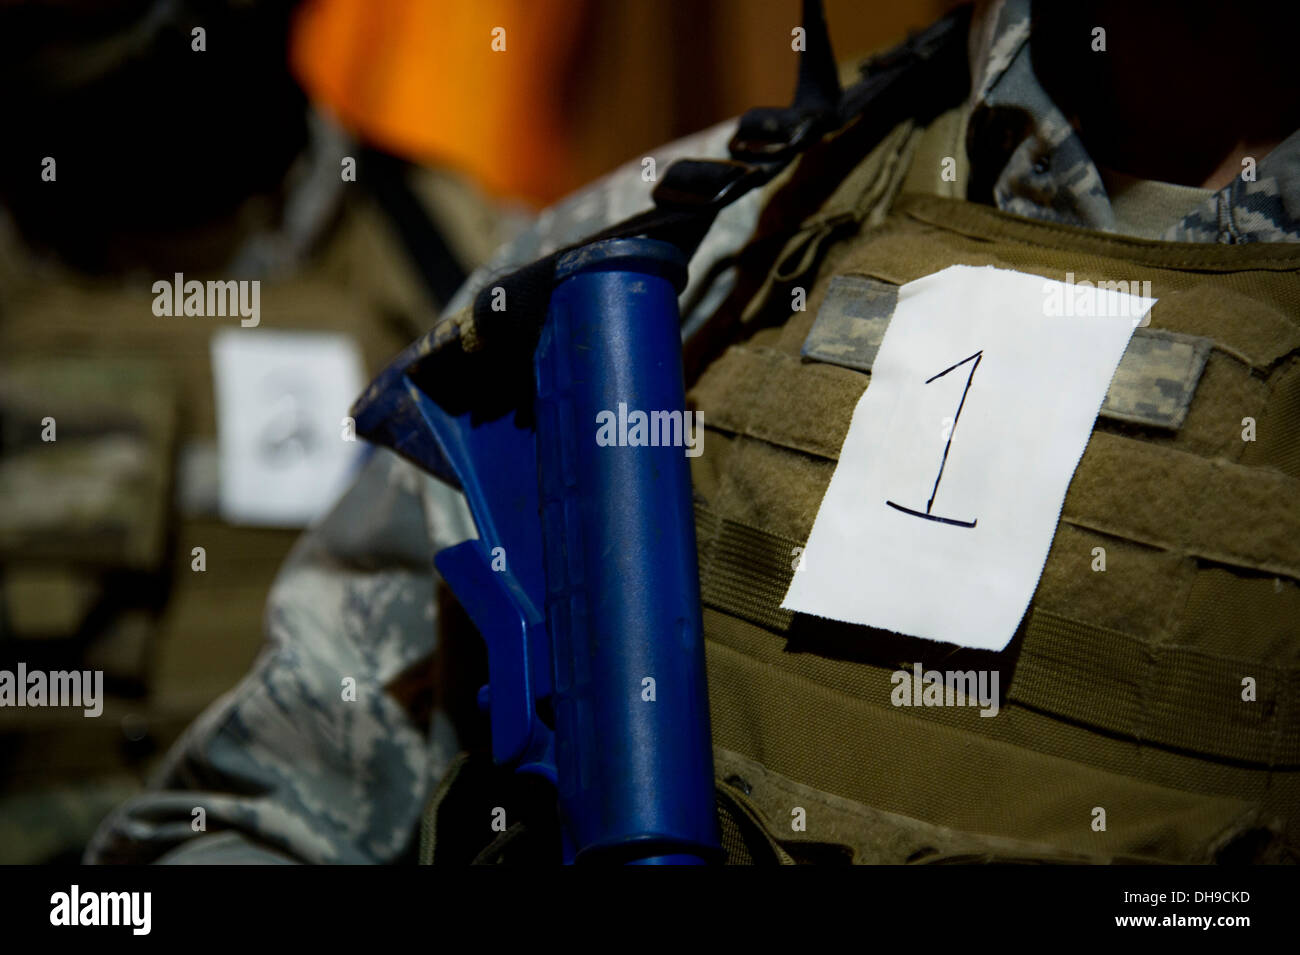 During the 91st Security Support Squadron tactical response force tryouts, participants are given numbers to wear on their helme - Stock Image